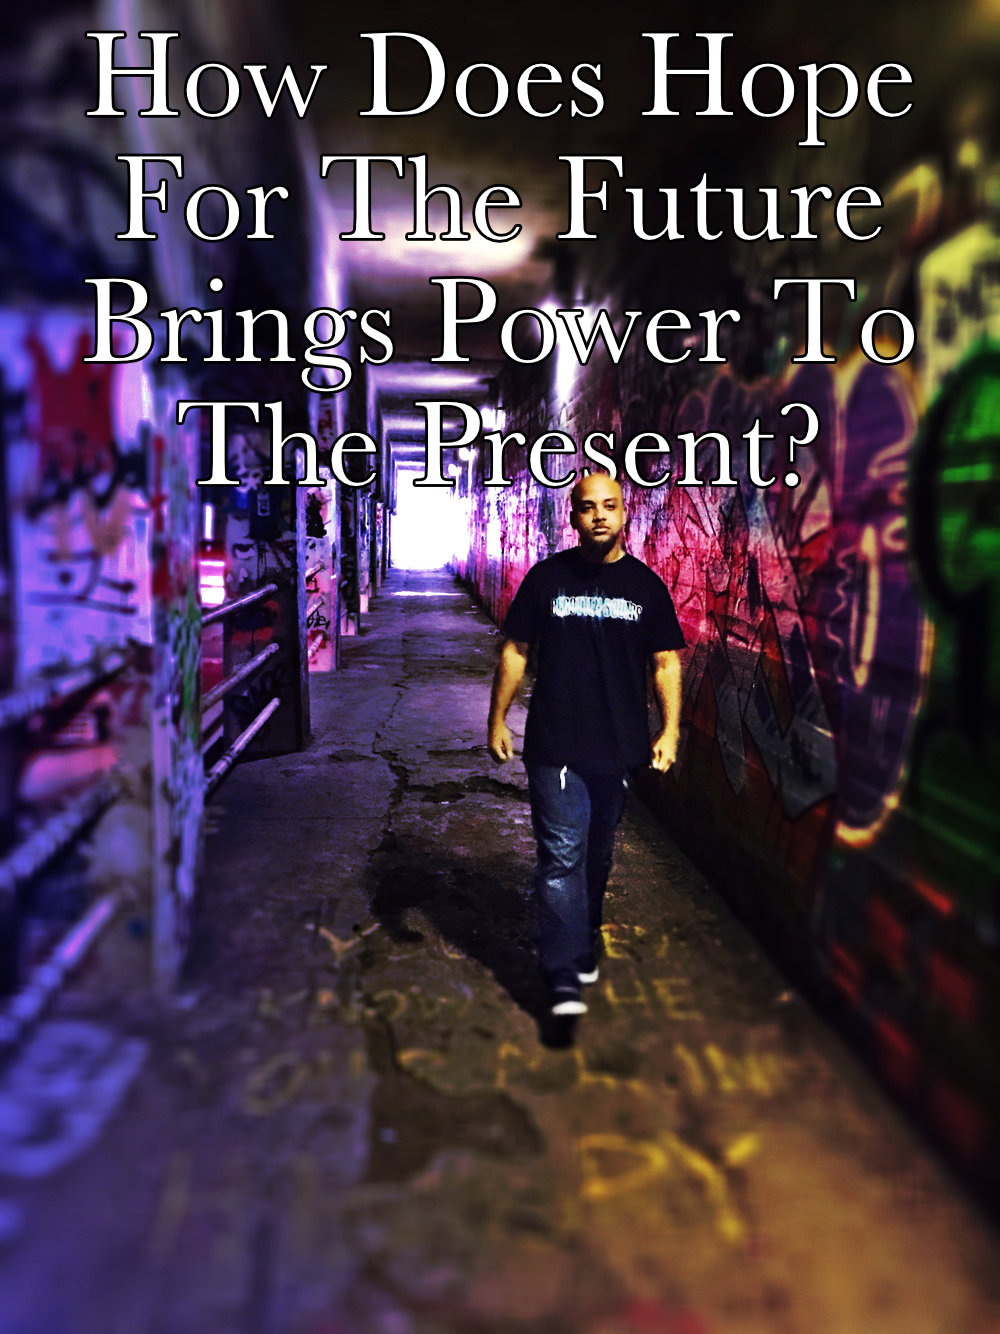 Hope For The Future Power To The Present